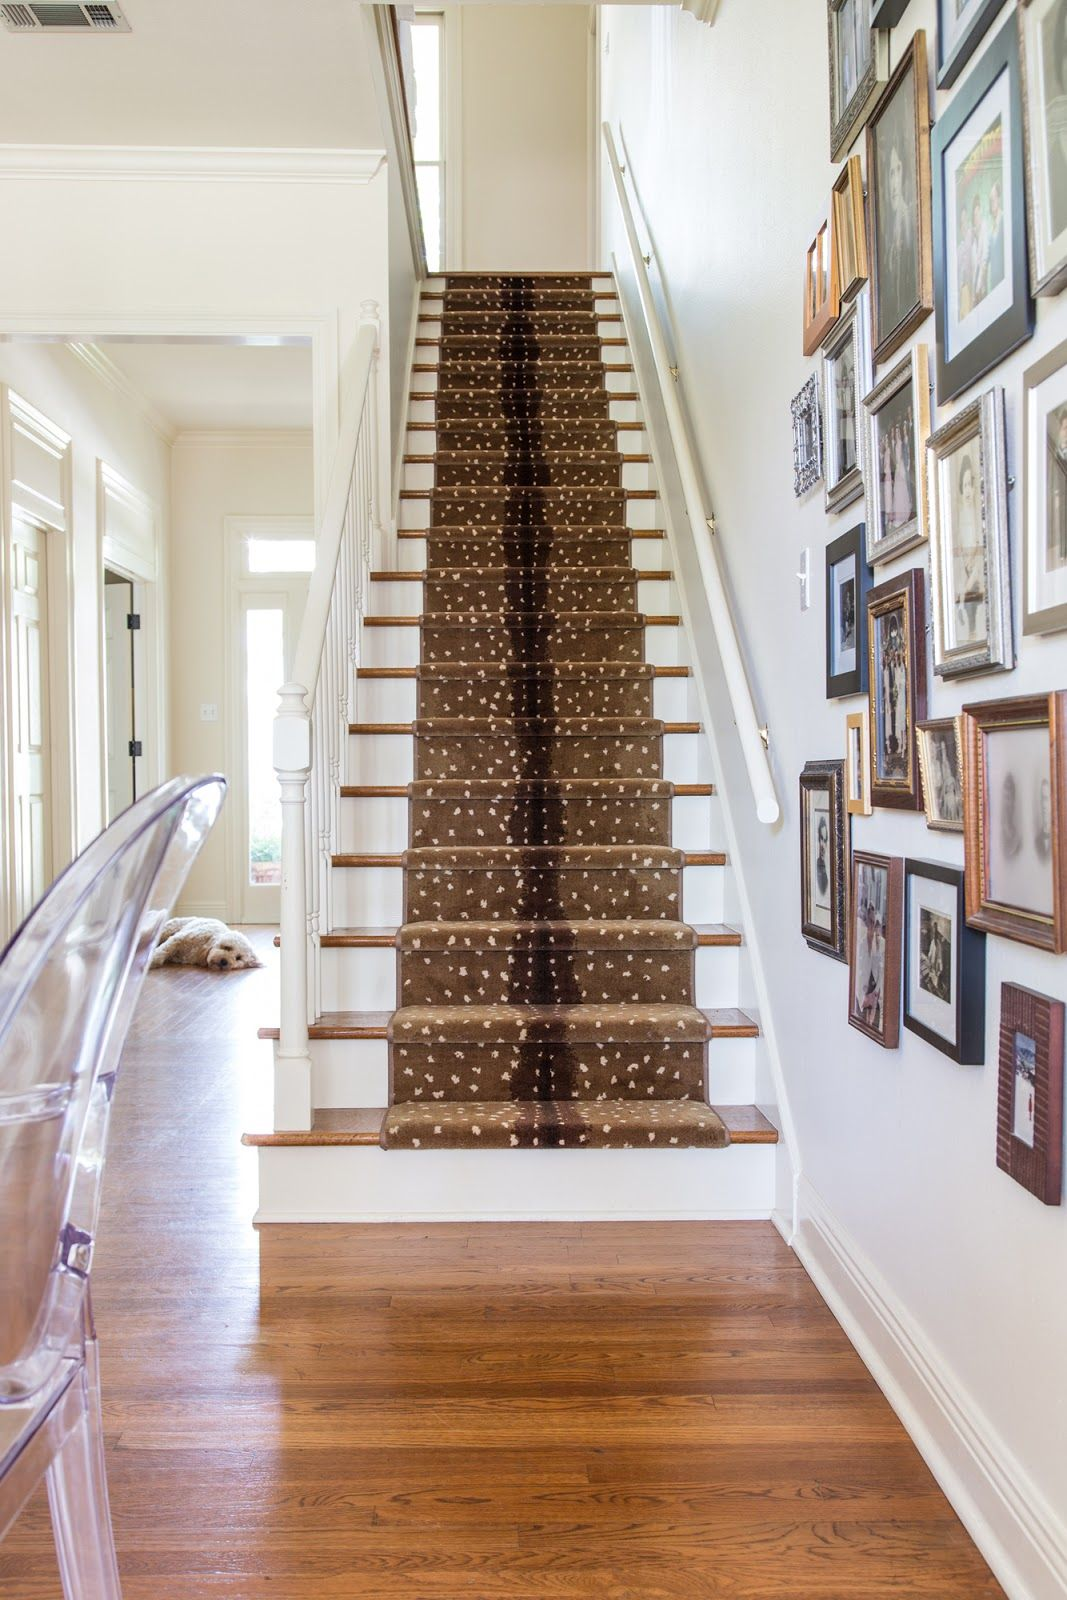 Best Antelope Stair Runner By Karastan Very Forgiving Of Traffic And Wear Light Floors Ghost Chair 400 x 300